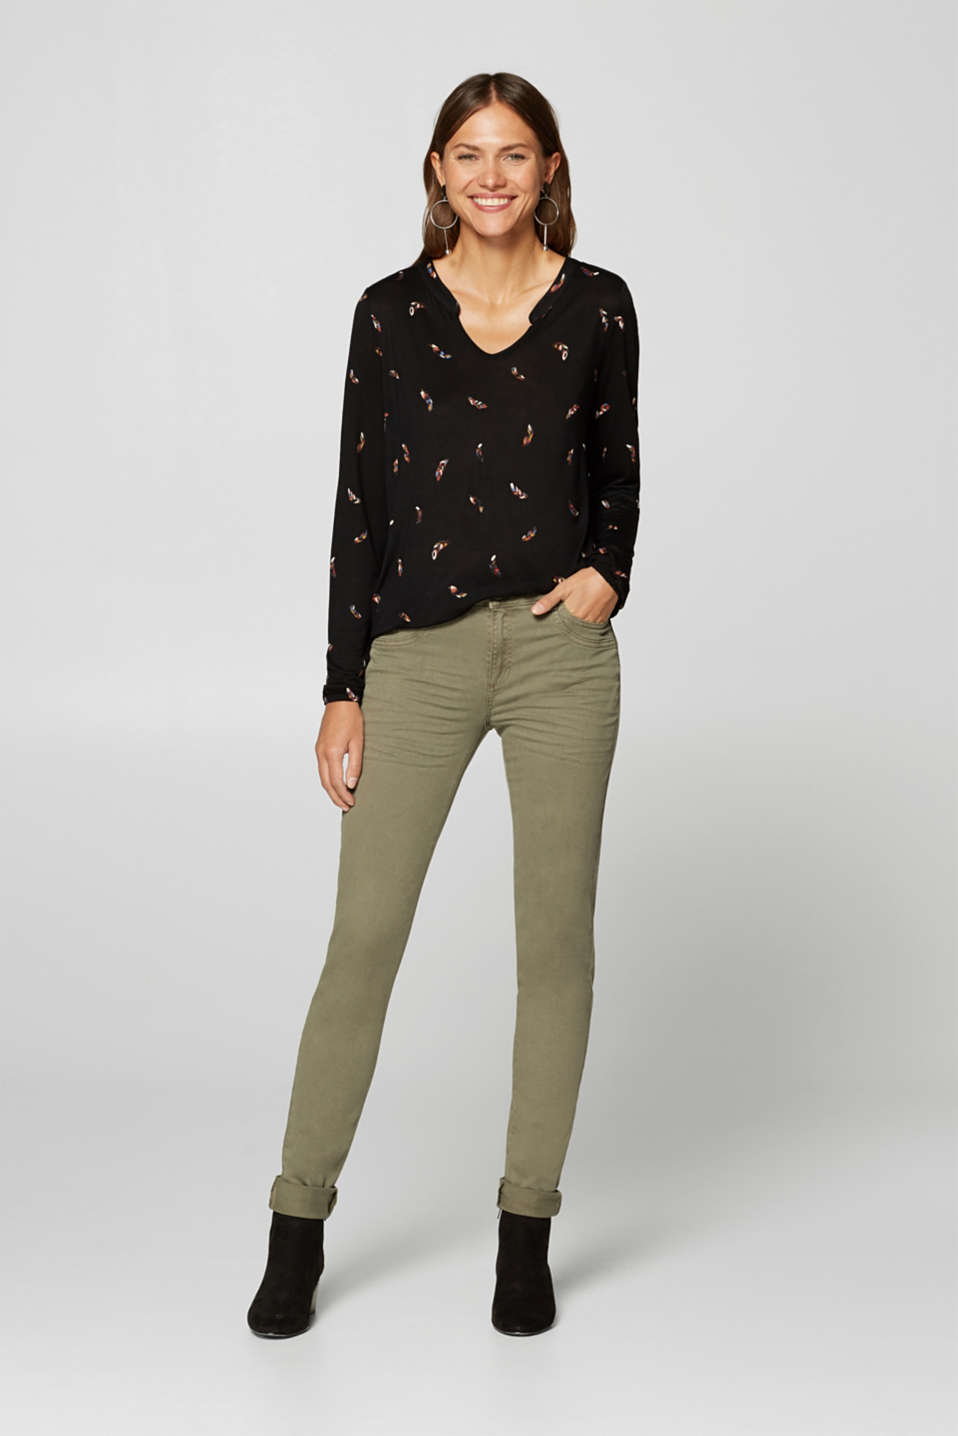 Esprit - Long-sleeve Henley top with elasticated edges